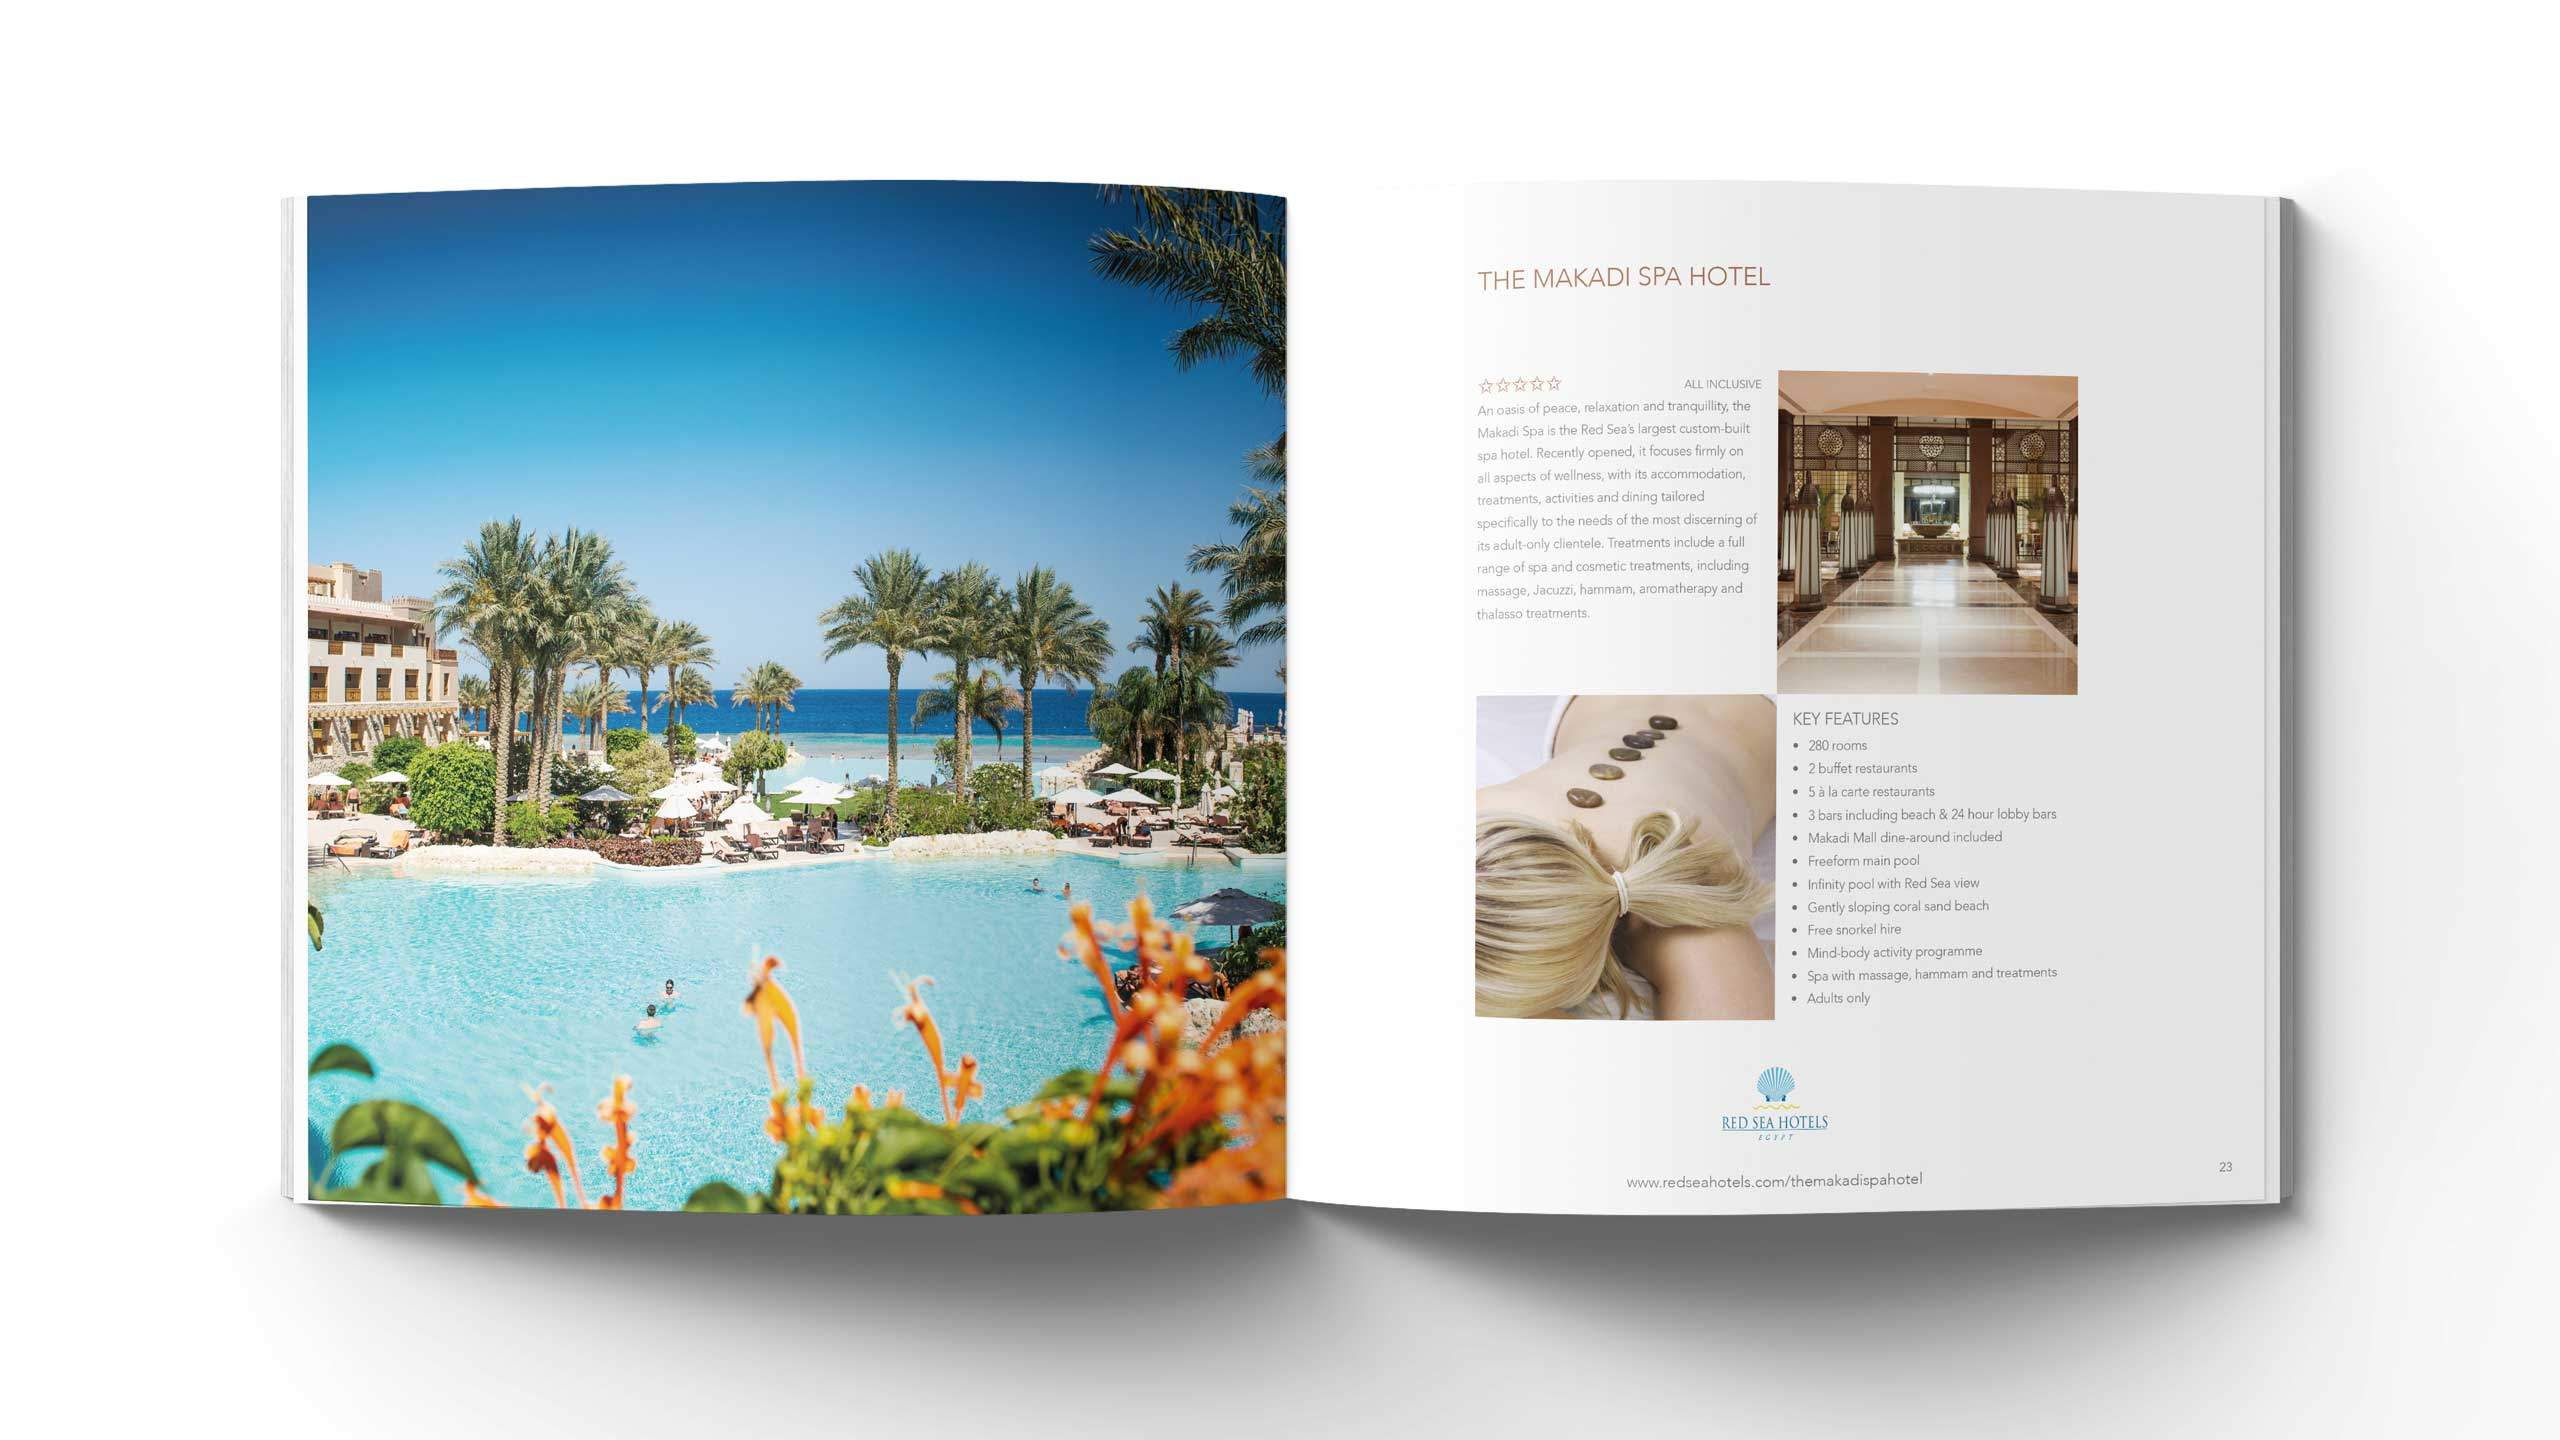 luxury hotels brochure design makadi spa hotel pages red sea hotels